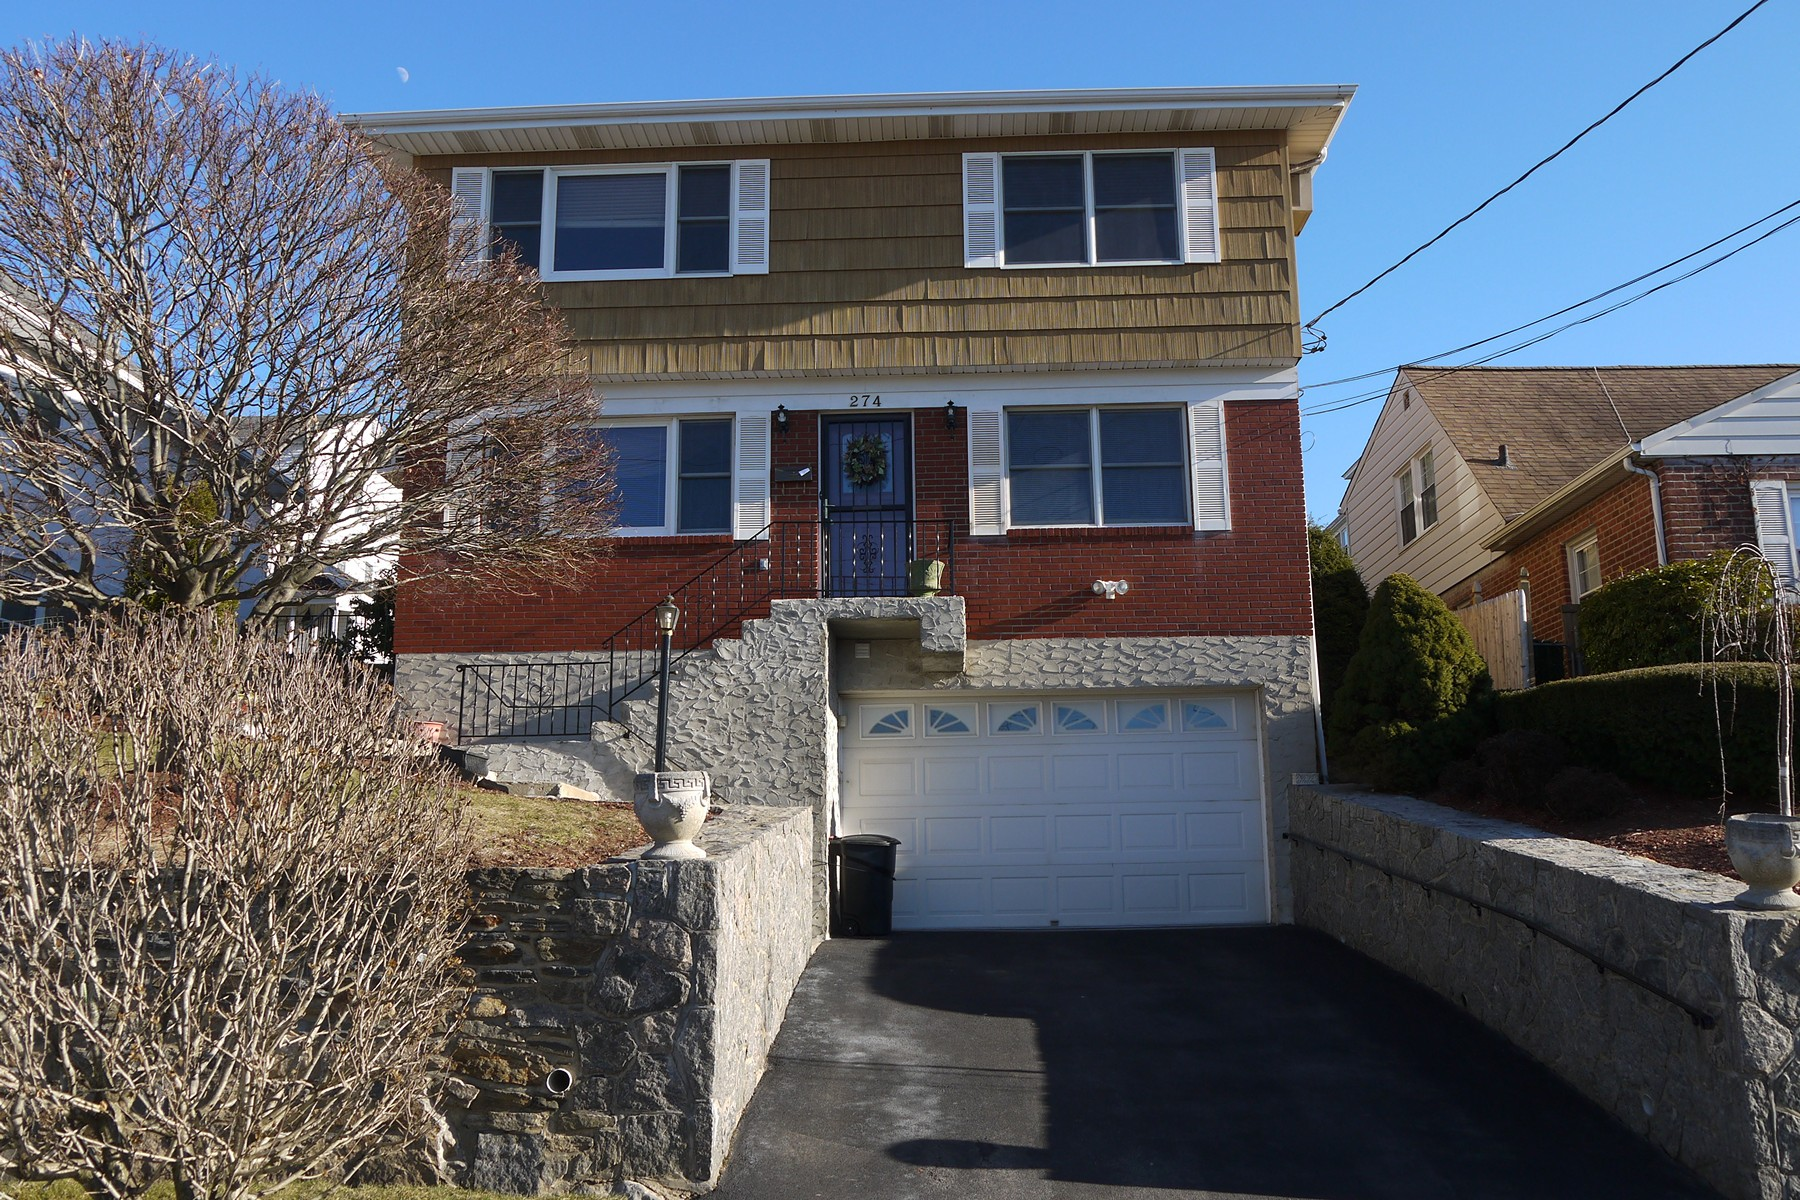 Multi-Family Home for Rent at Silver Lake Rental 274 Gainsborg Ave West Harrison, New York 10604 United States